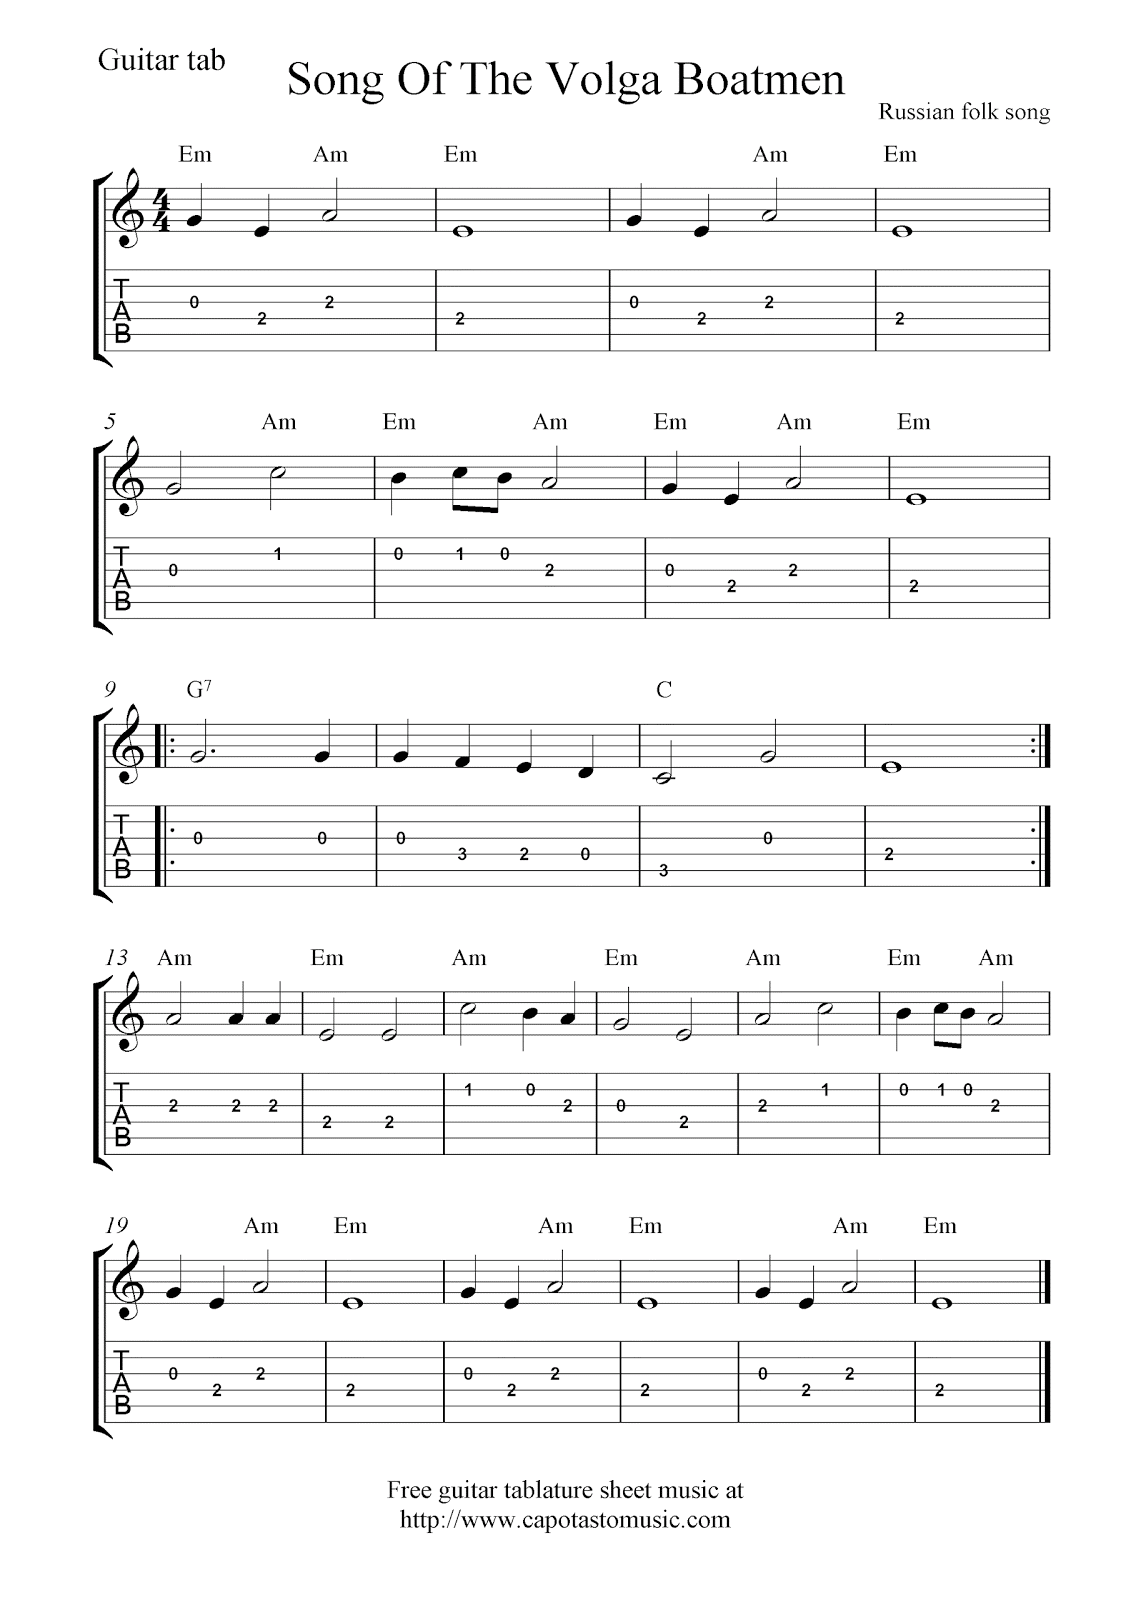 photo relating to Printable Tablature referred to as Very simple totally free guitar tab sheet audio rating, Track Of The Volga